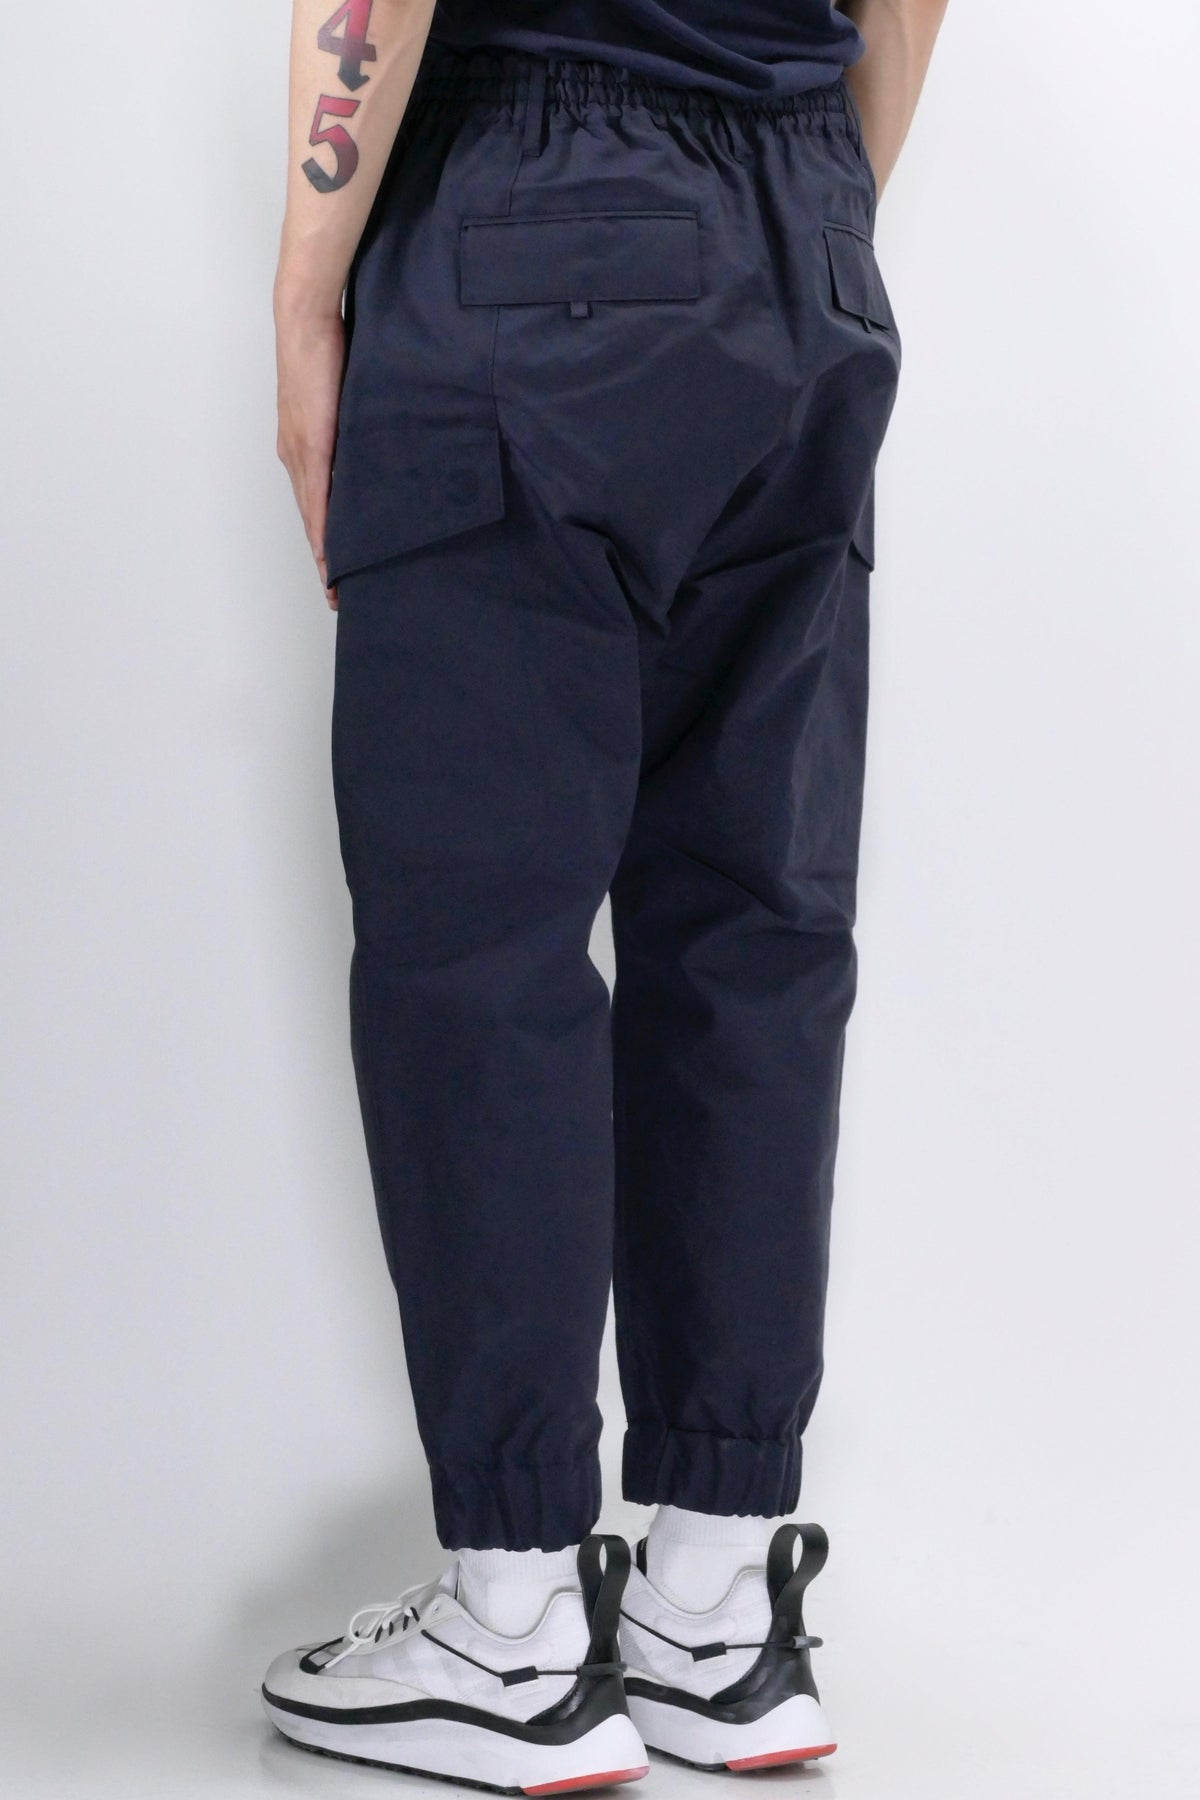 Y-3 CL Nylon Cargo Pant Legend Ink